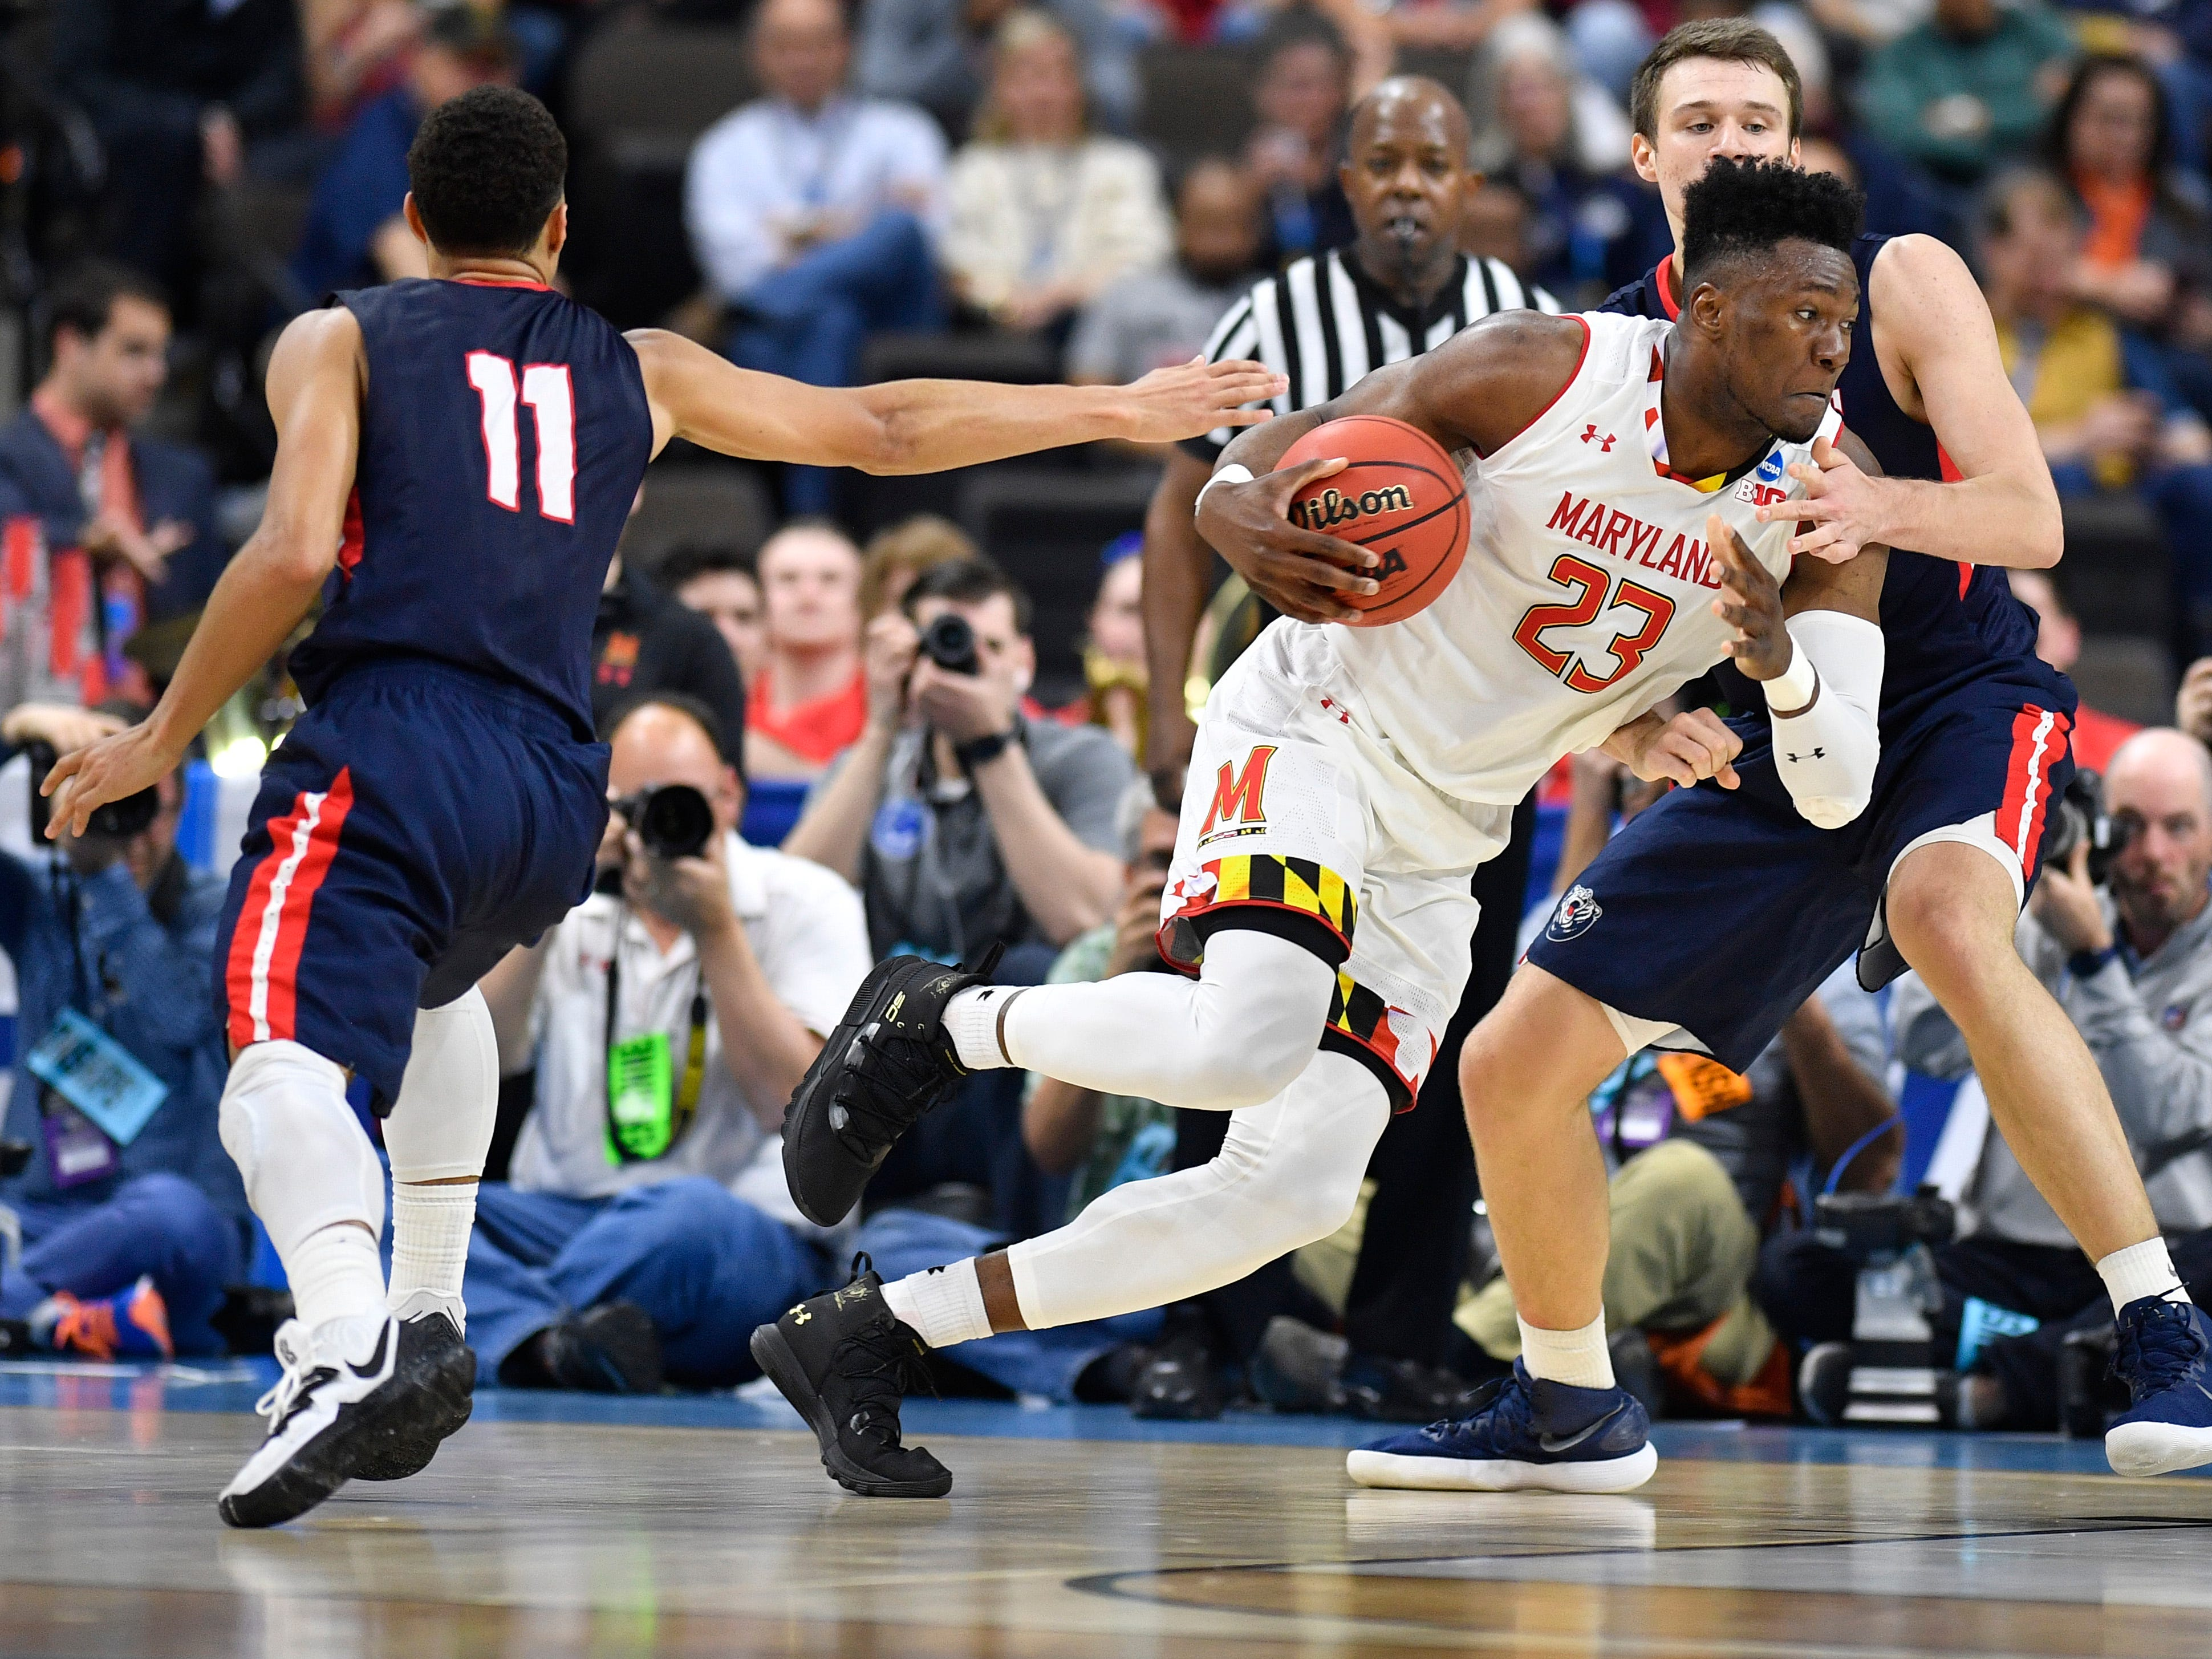 Maryland forward Bruno Fernando (23) pushes past Belmont center Seth Adelsperger (50) during the first half of the first-round NCAA college basketball tournament game at VyStar Veterans Memorial Arena in Jacksonville, Fla., Thursday, March 21, 2019.